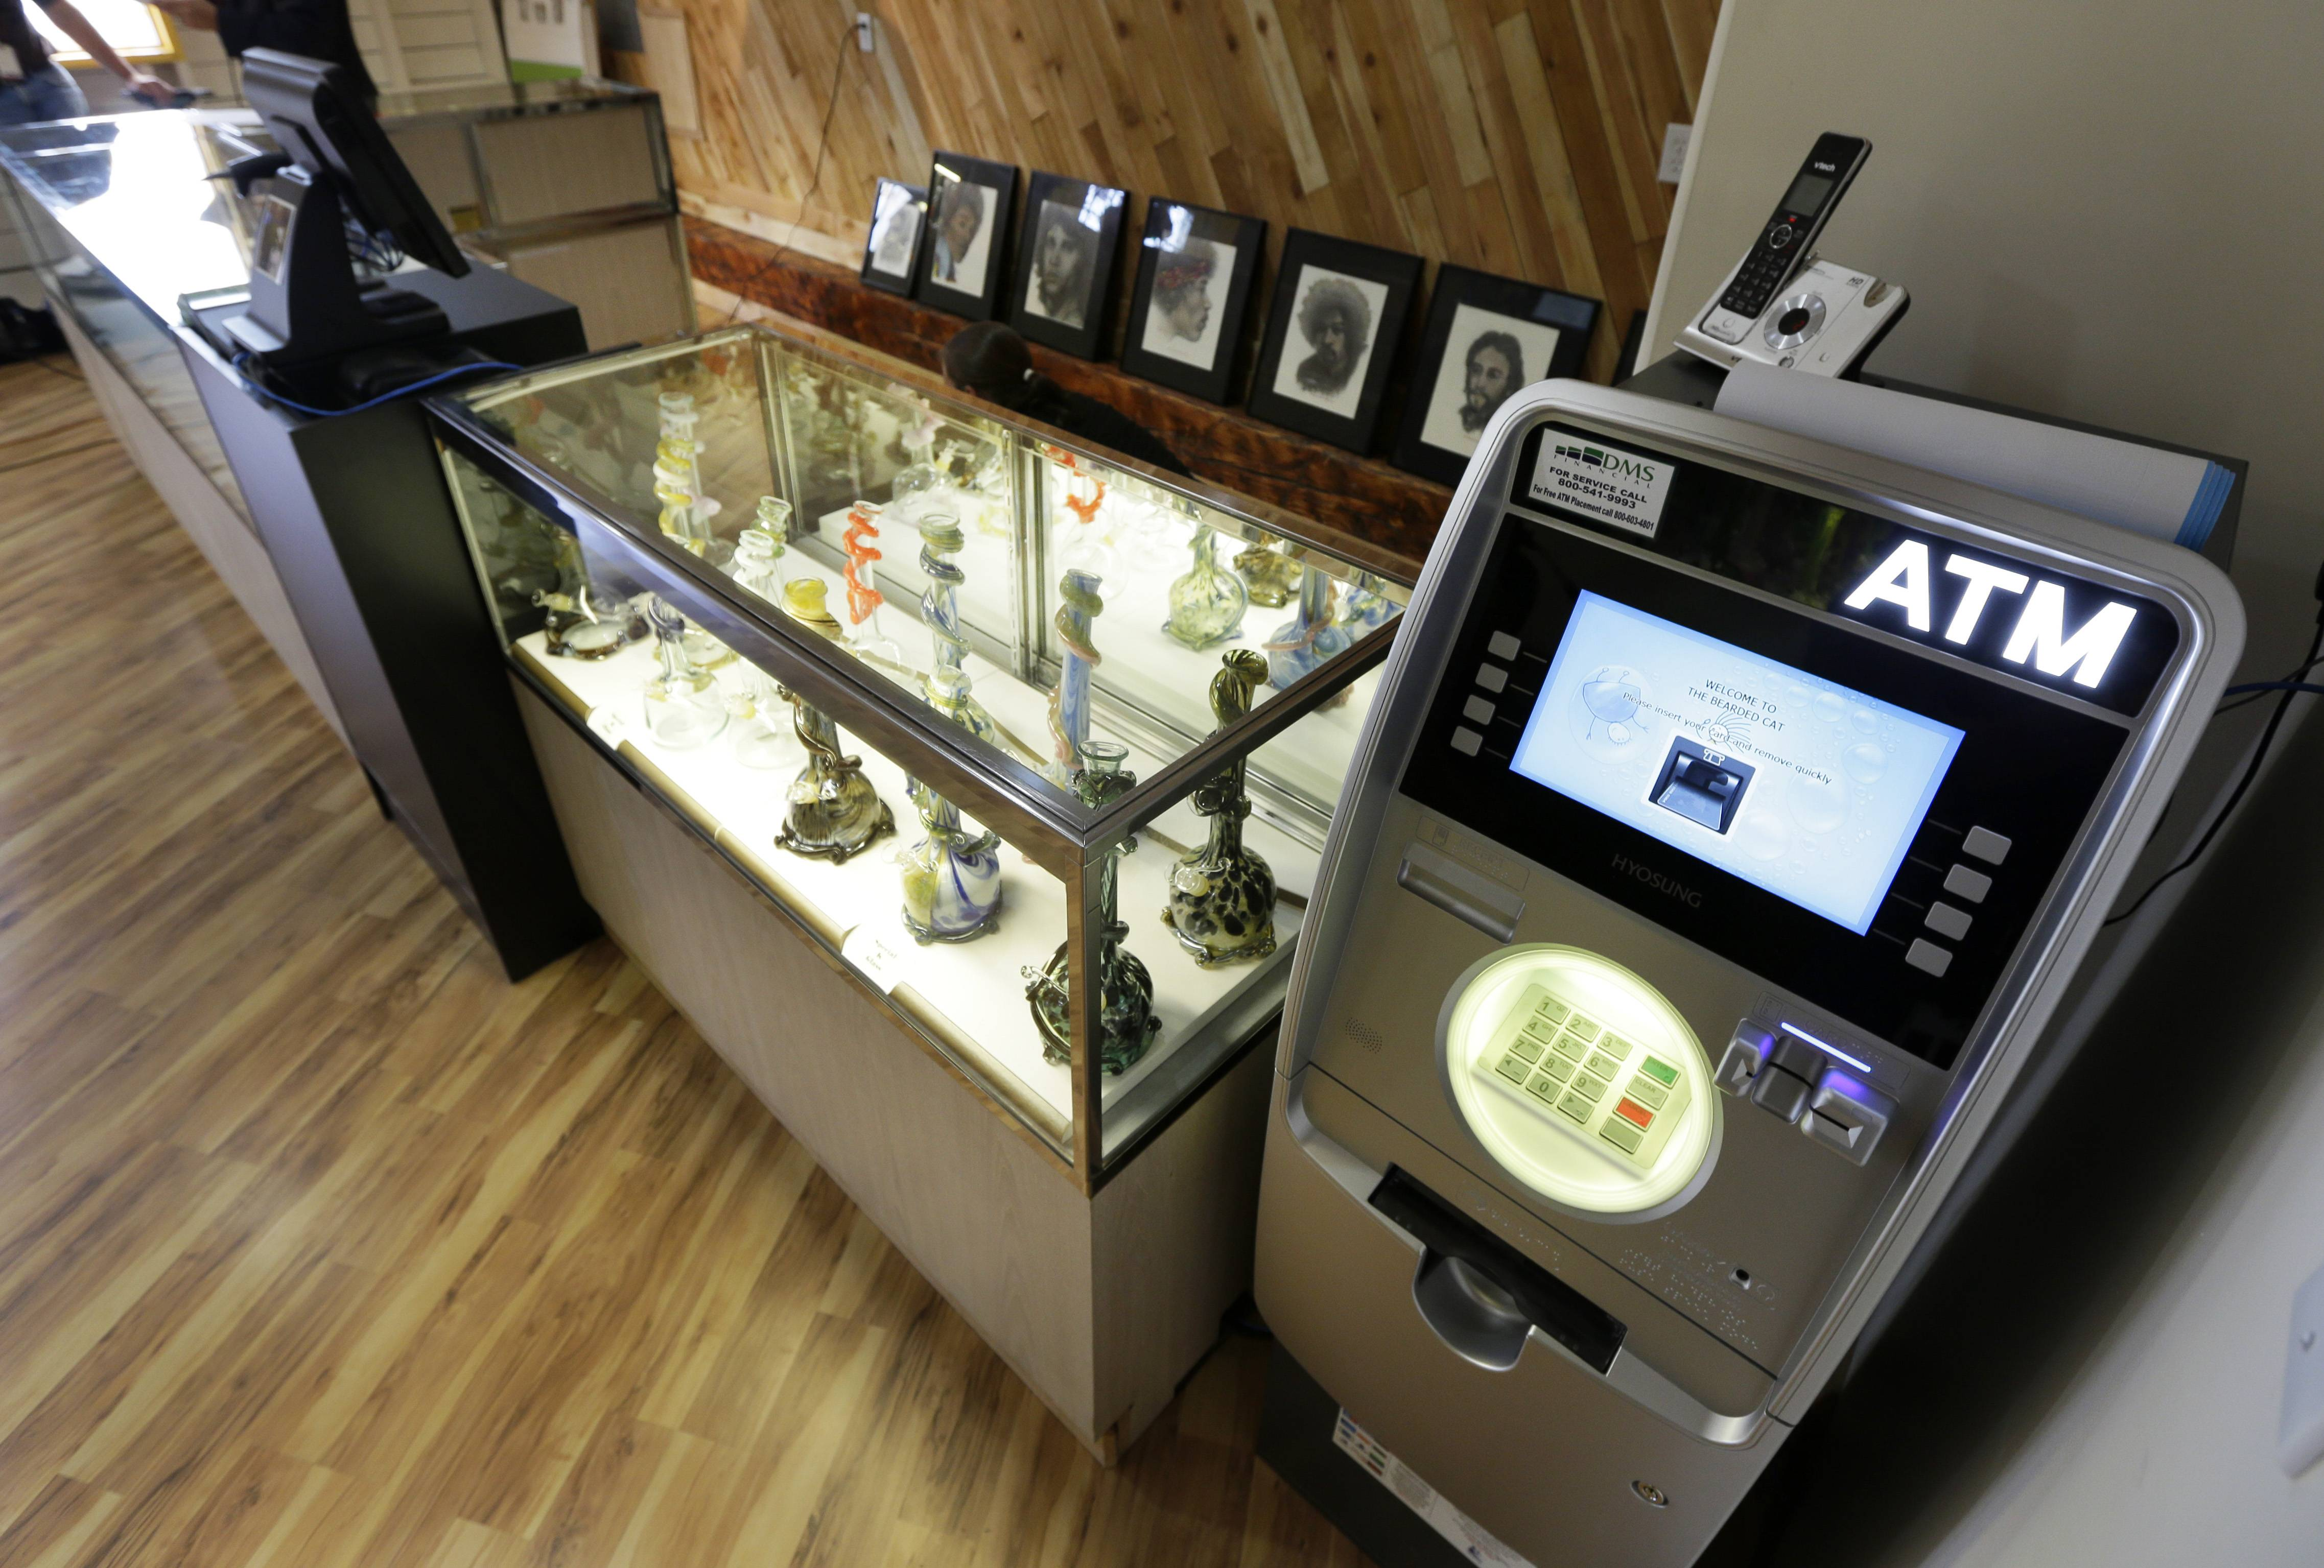 An ATM sits next to a case displaying glass bongs, Monday, July 7, 2014 at the recreational marijuana store Cannabis City in Seattle. When legal sales begin on Tuesday, July 8, 2014, the store will be the first and only store in Seattle to initially sell recreational marijuana.